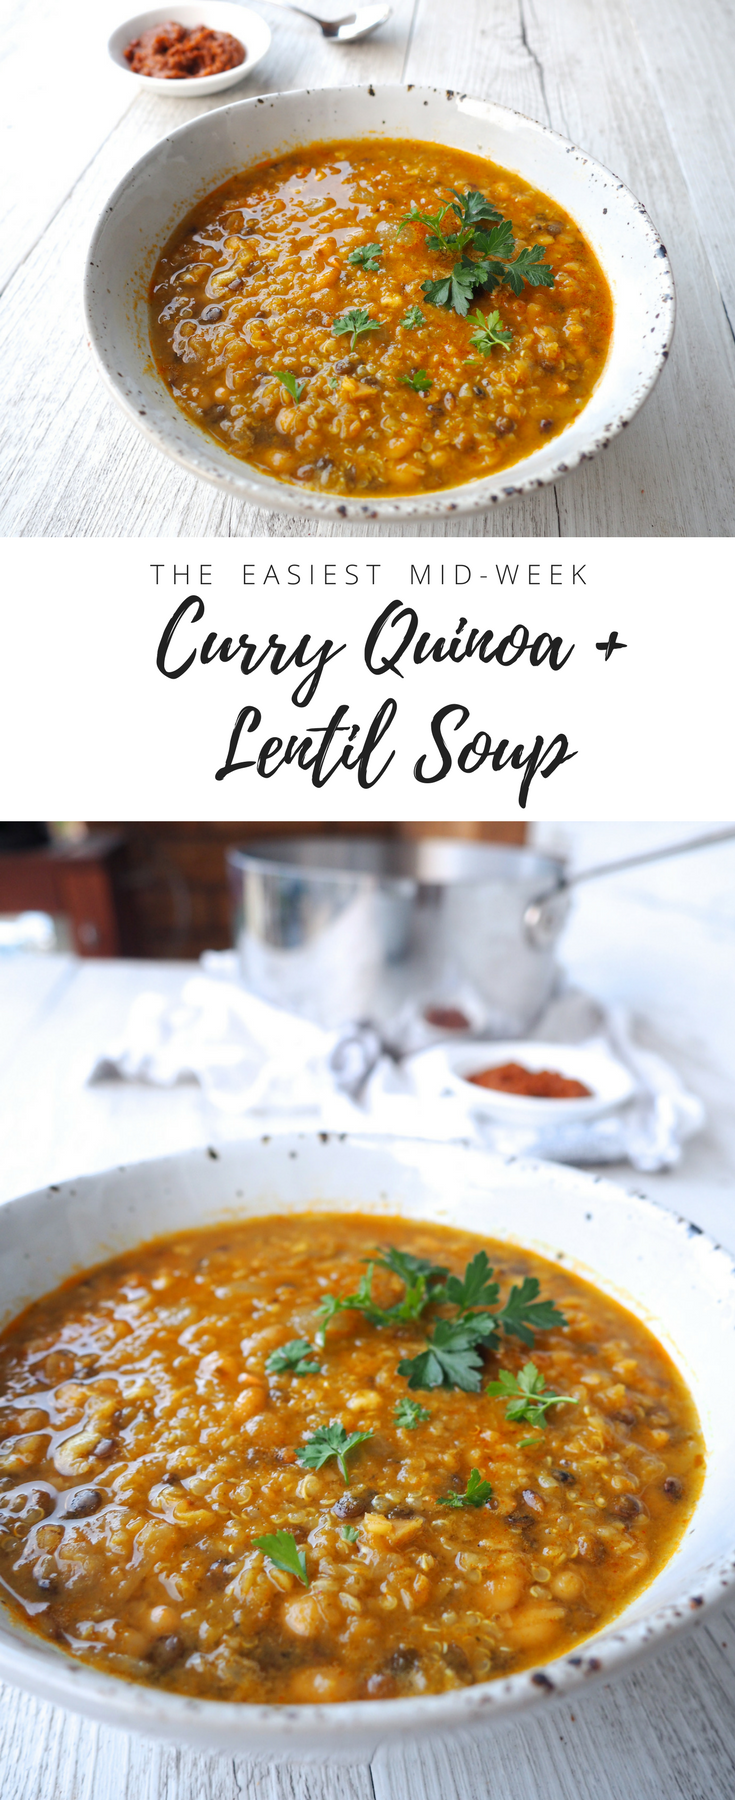 Curry Quinoa and Lentil Soup Recipe by nutritionist Lyndi Cohen.png